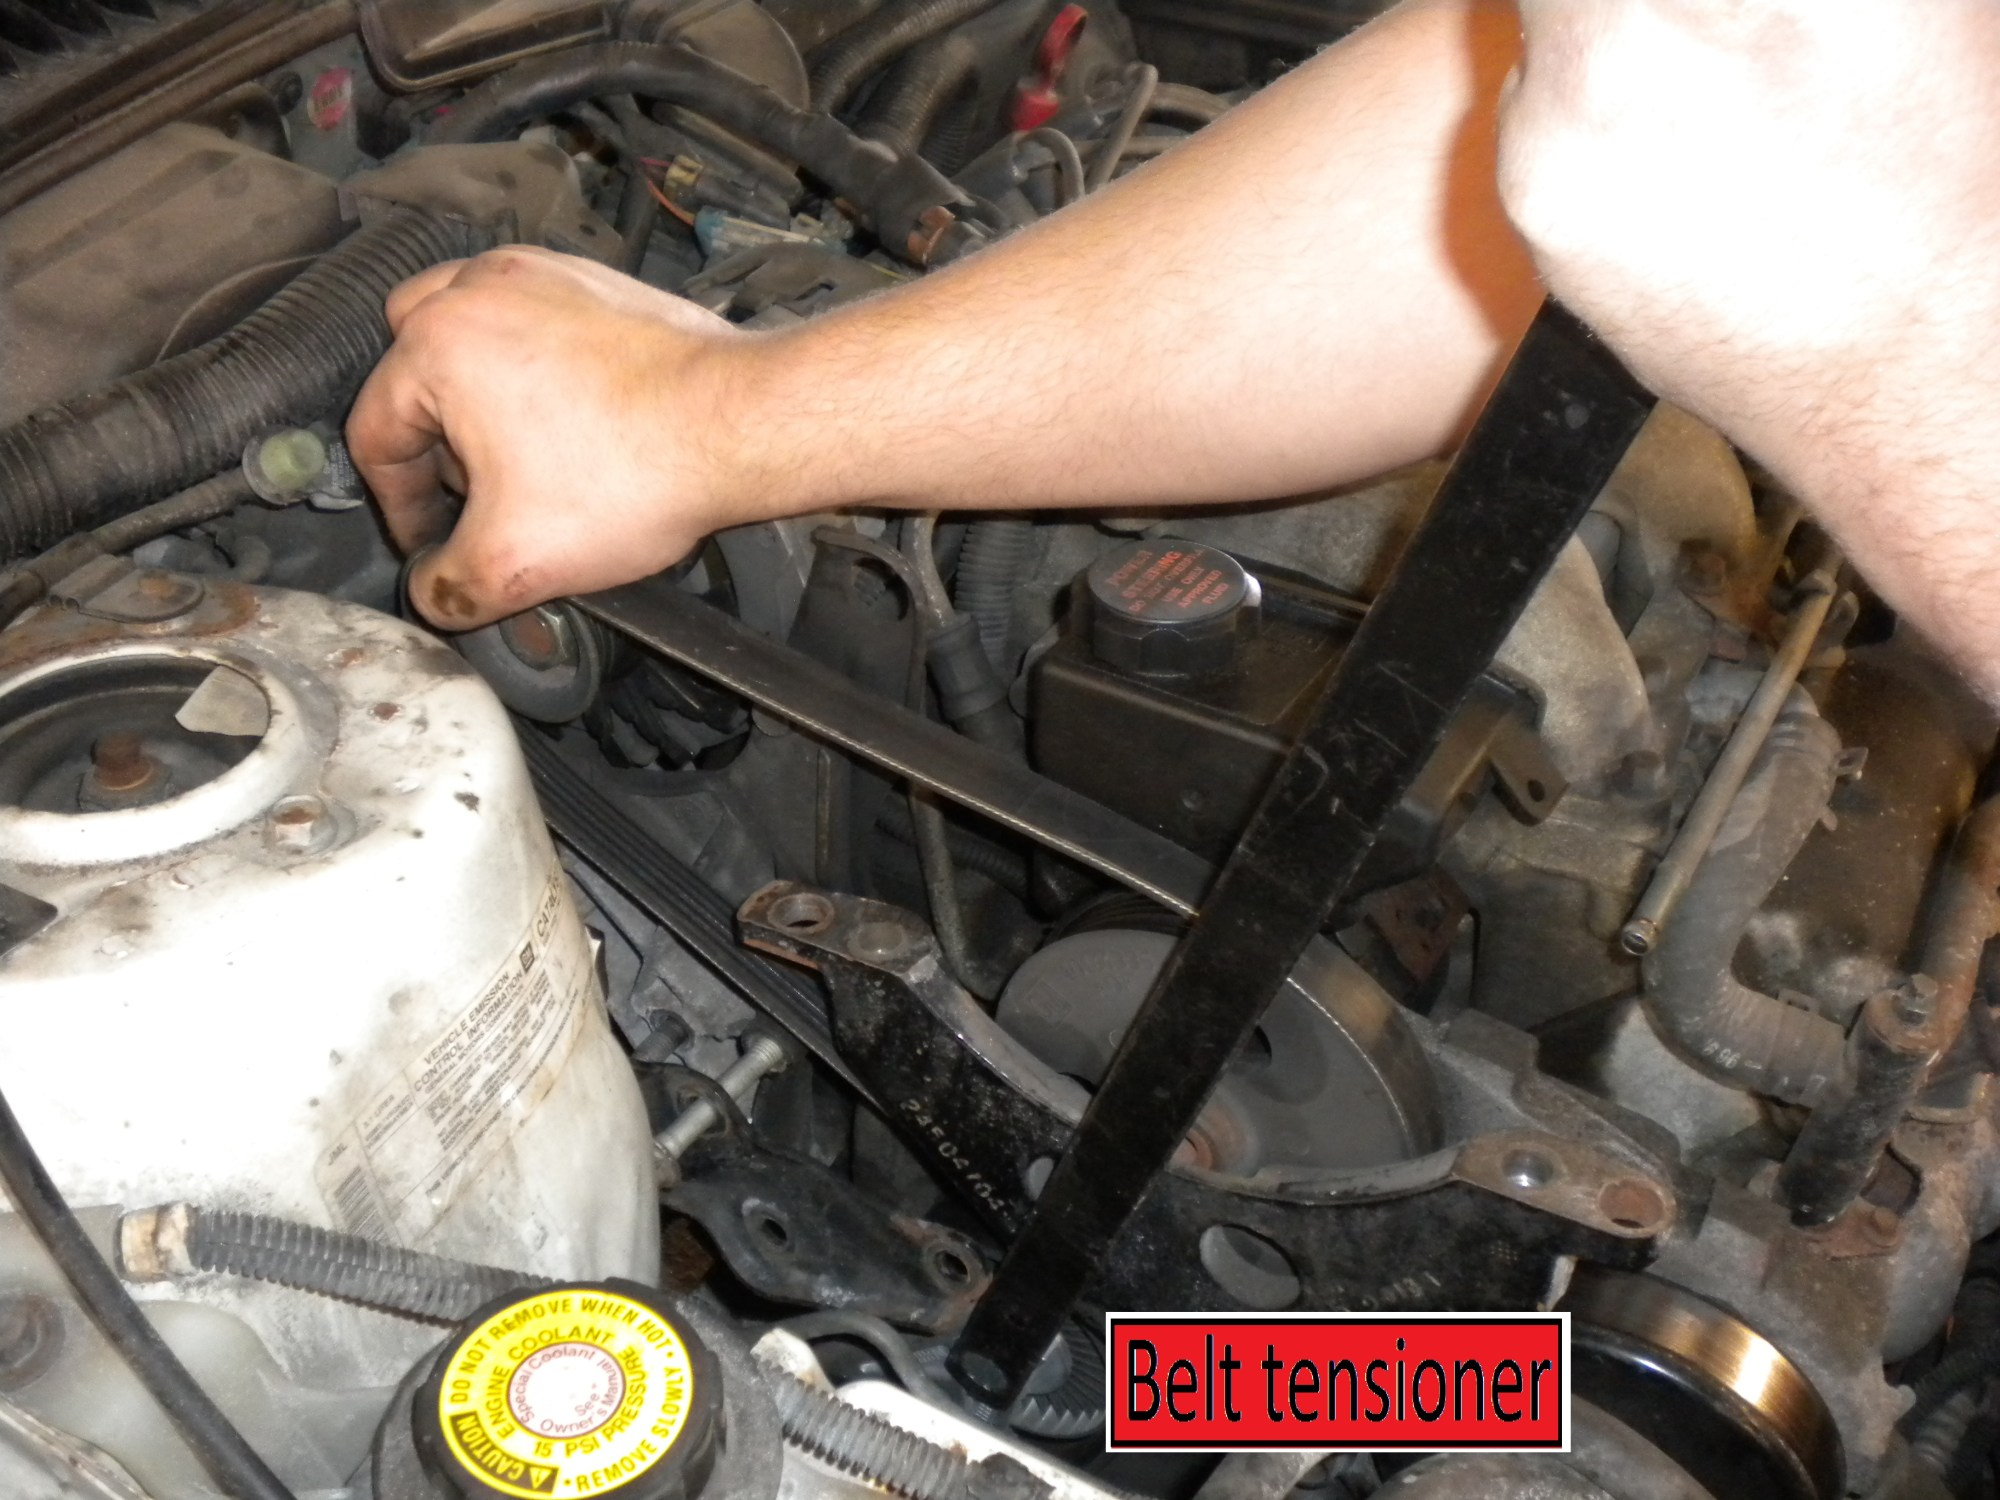 hight resolution of how to install a new belt tensioner with pulley for serpentine belt on plymouth voyager v6 mid 1990 early 2000 years